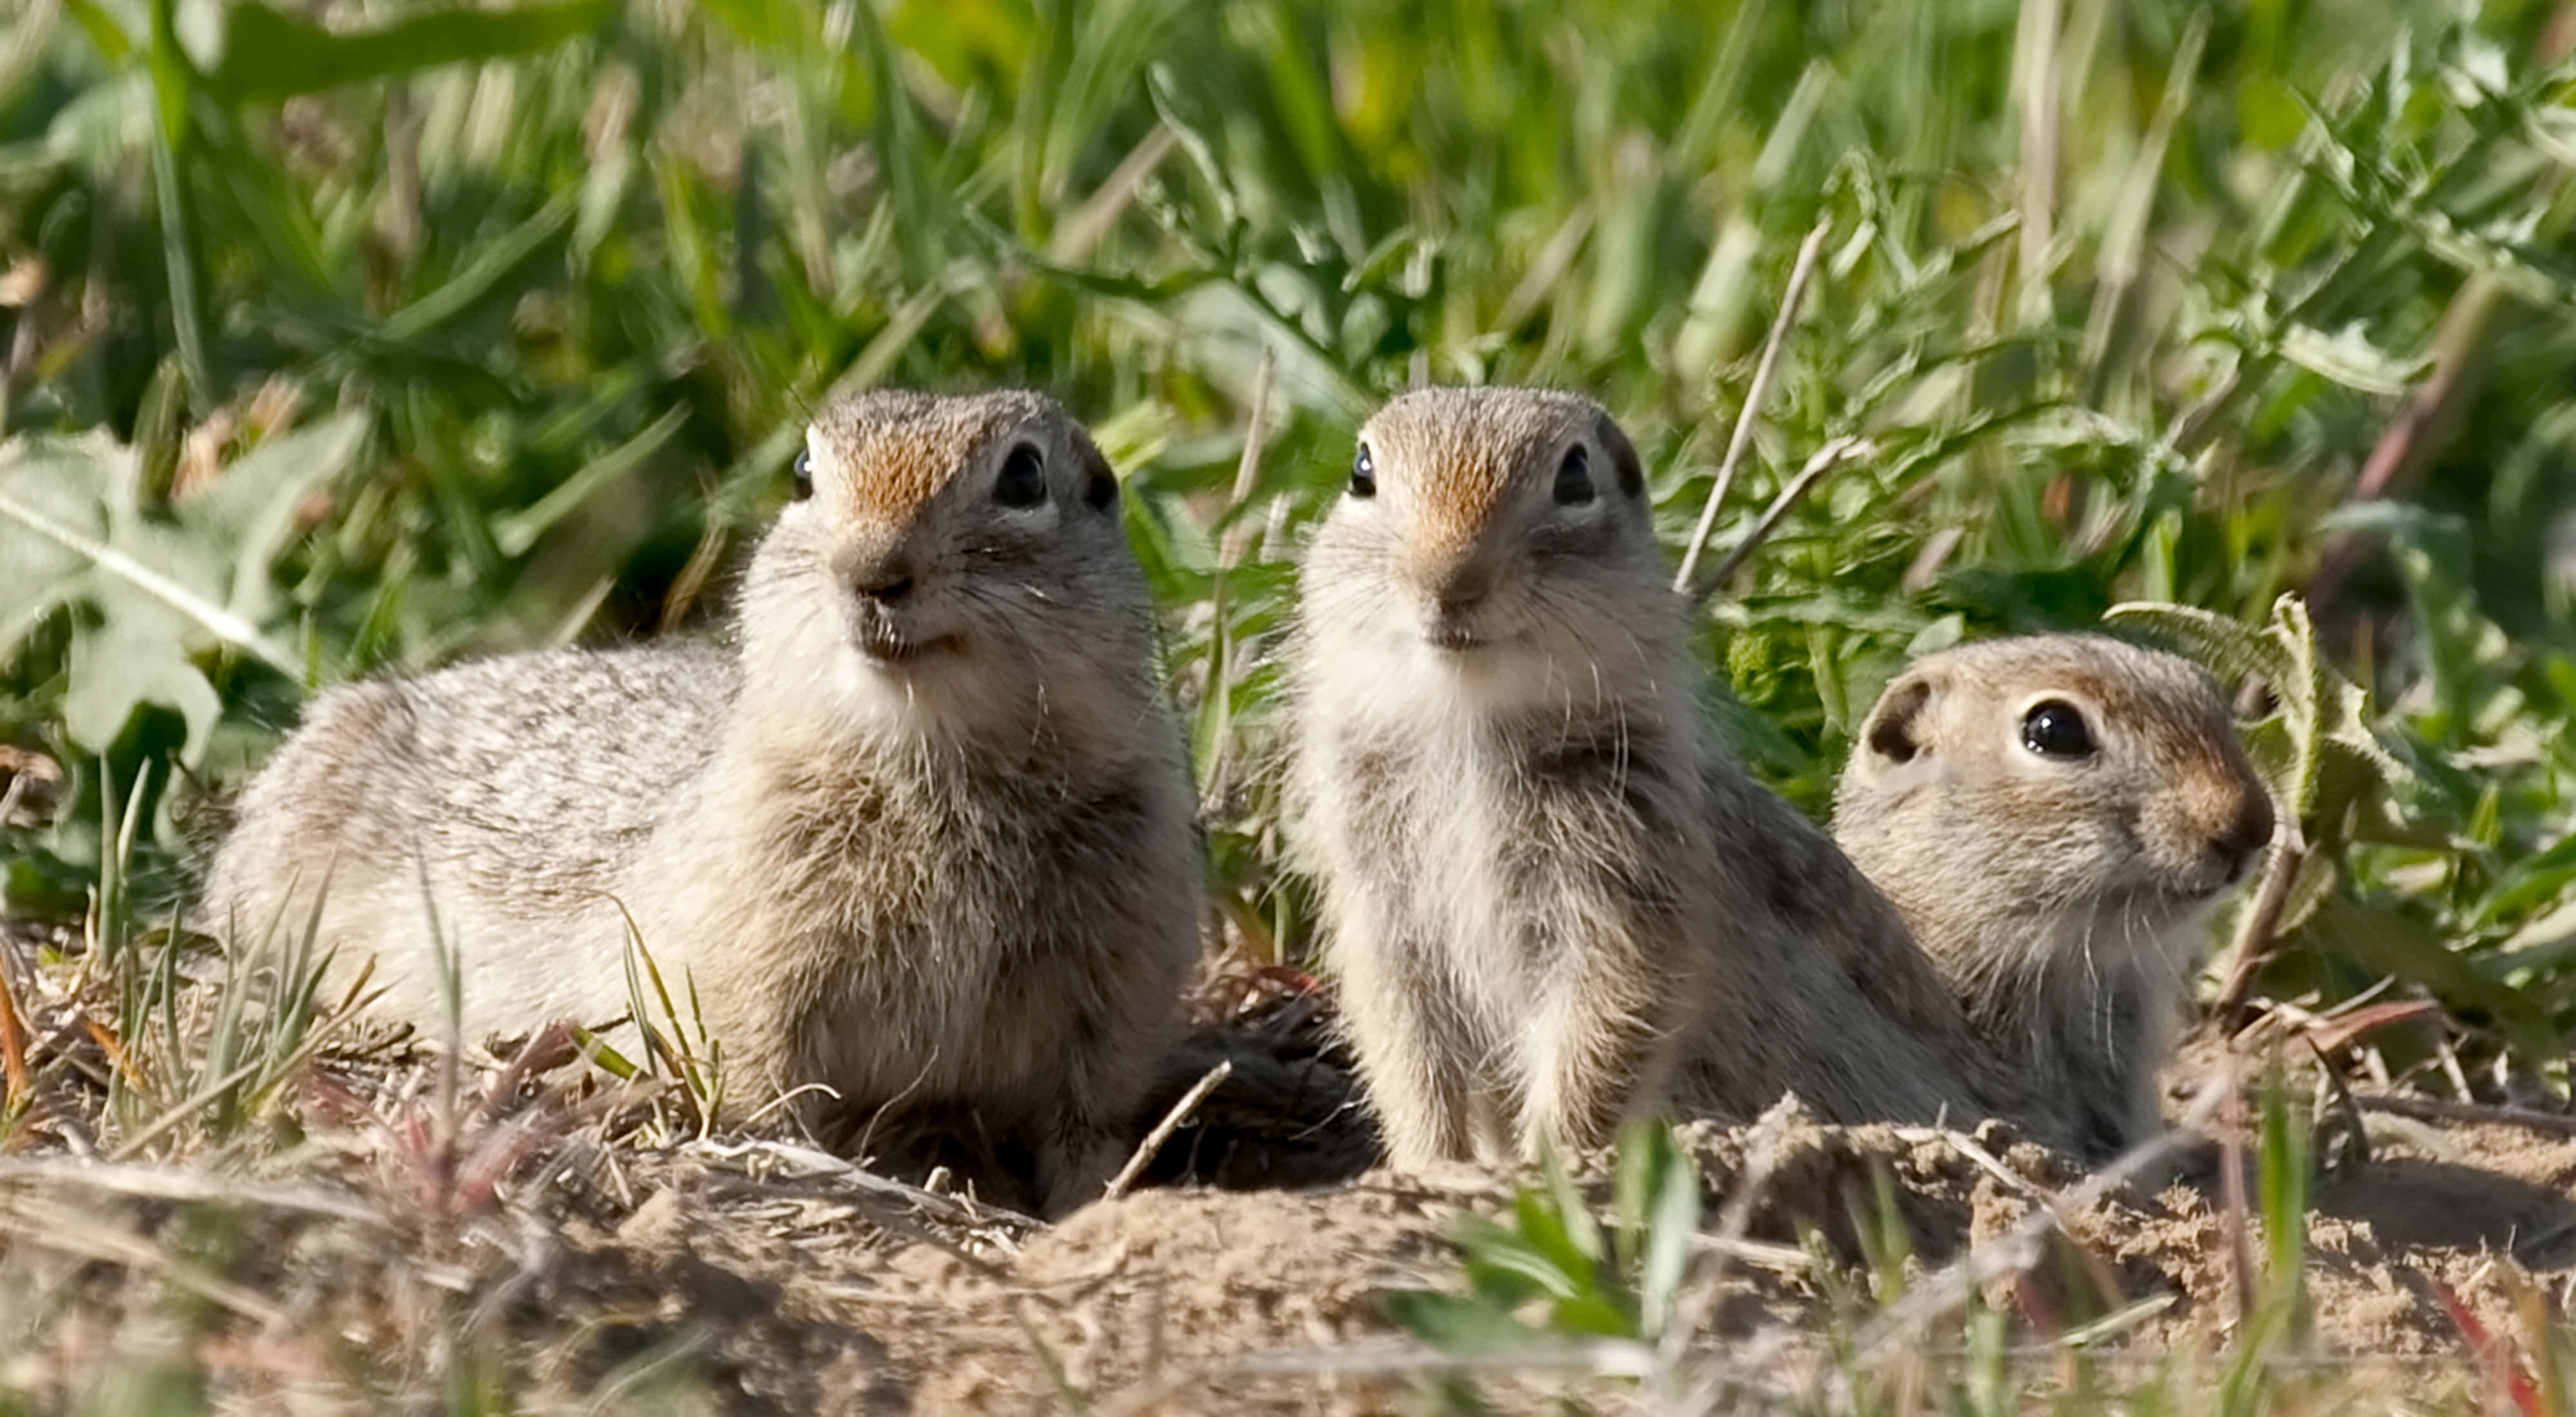 Washington ground squirrels found at the Conservancy's Boardman Grasslands along the Columbia River Gorge.